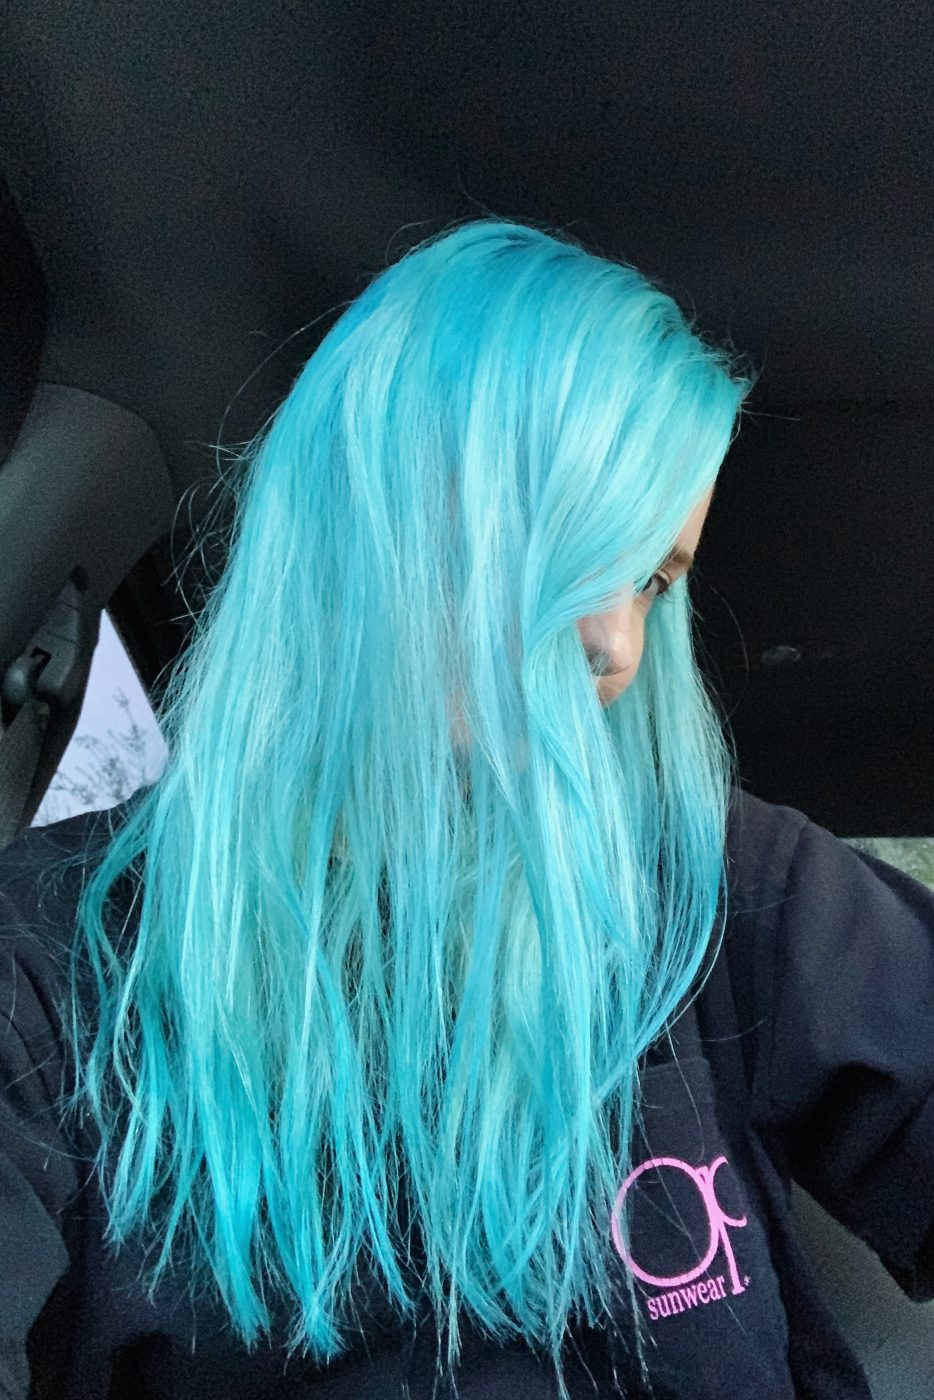 How To Fade Blue Hair Dye or Lighten Hair At Home